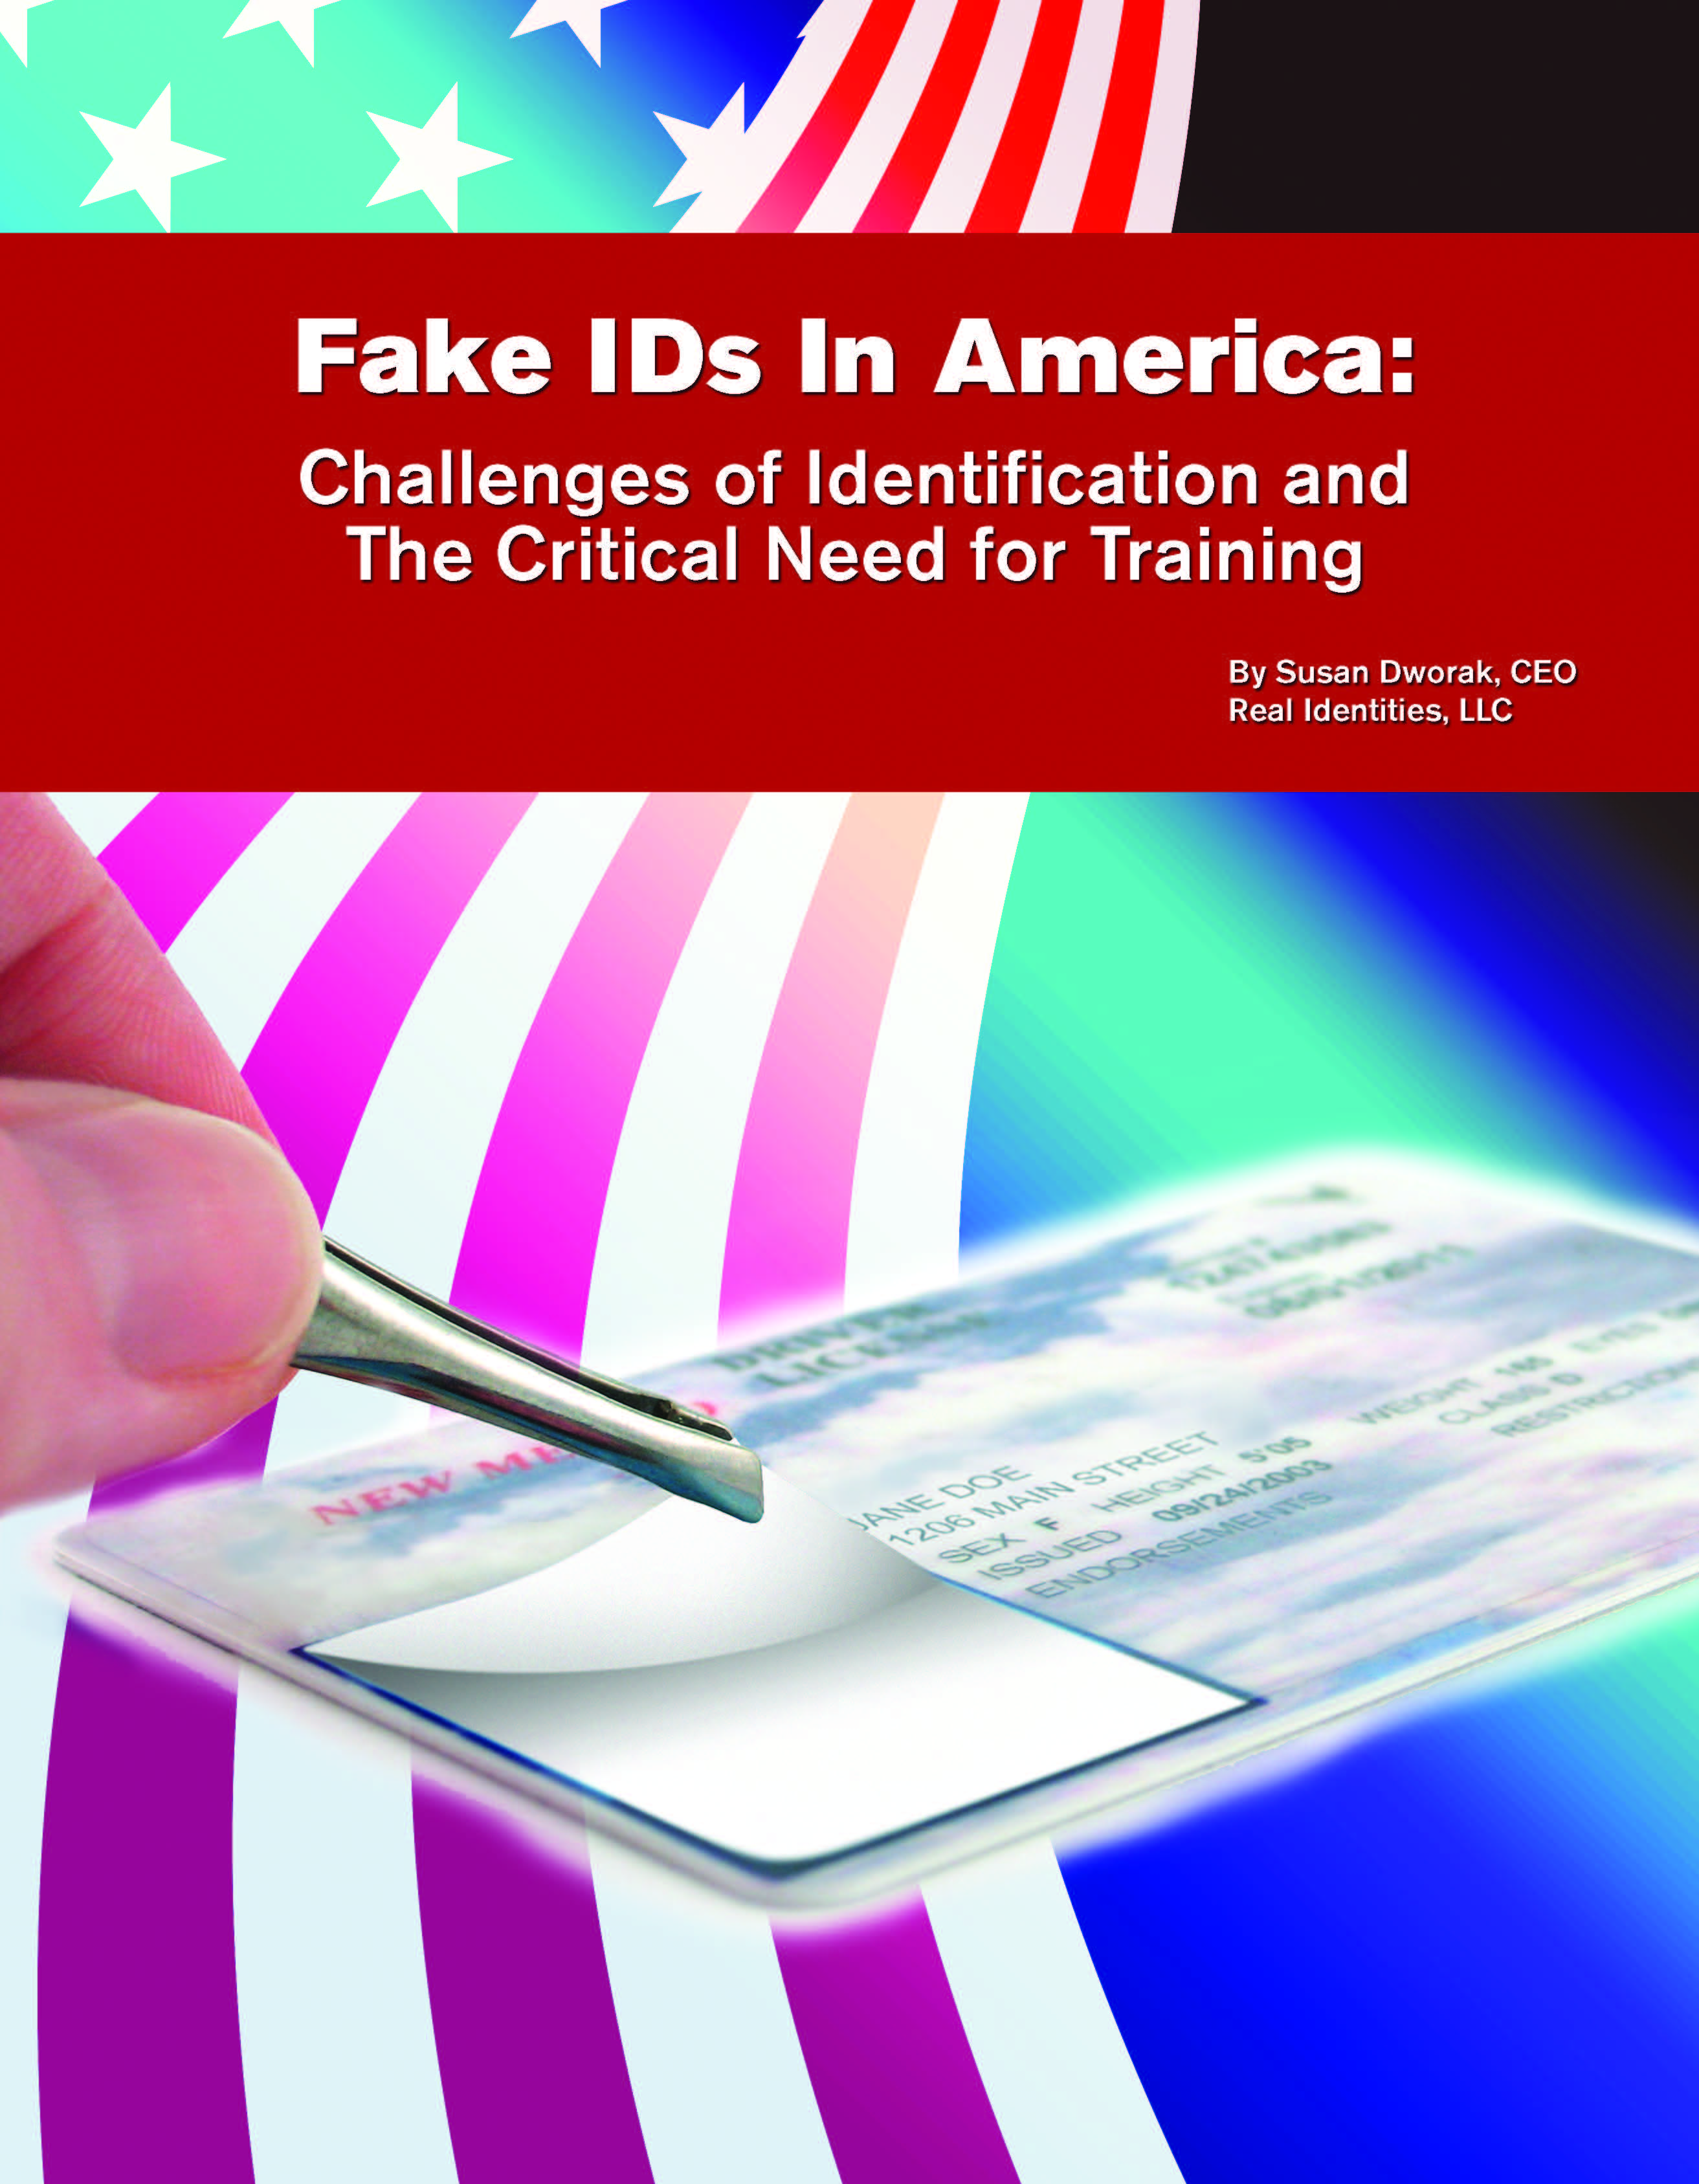 Center for Alcohol Policy » Fake IDs in America: Challenges of